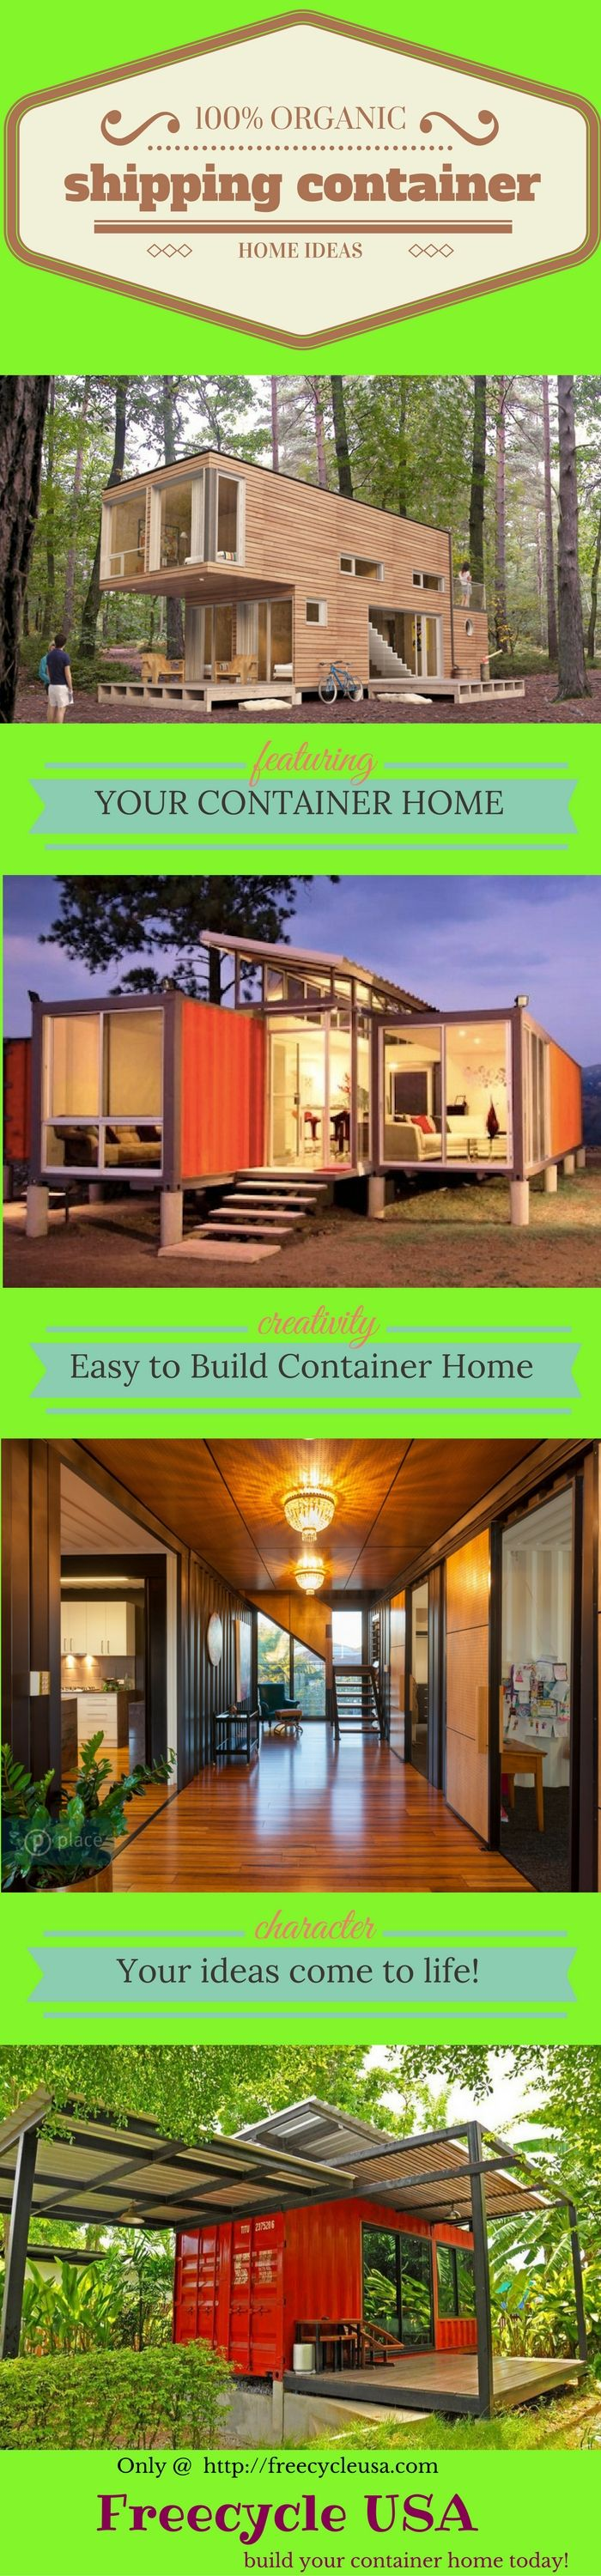 Amazing Are You Thinking About Building A Shipping Container Home? Follow This  Image To The Best